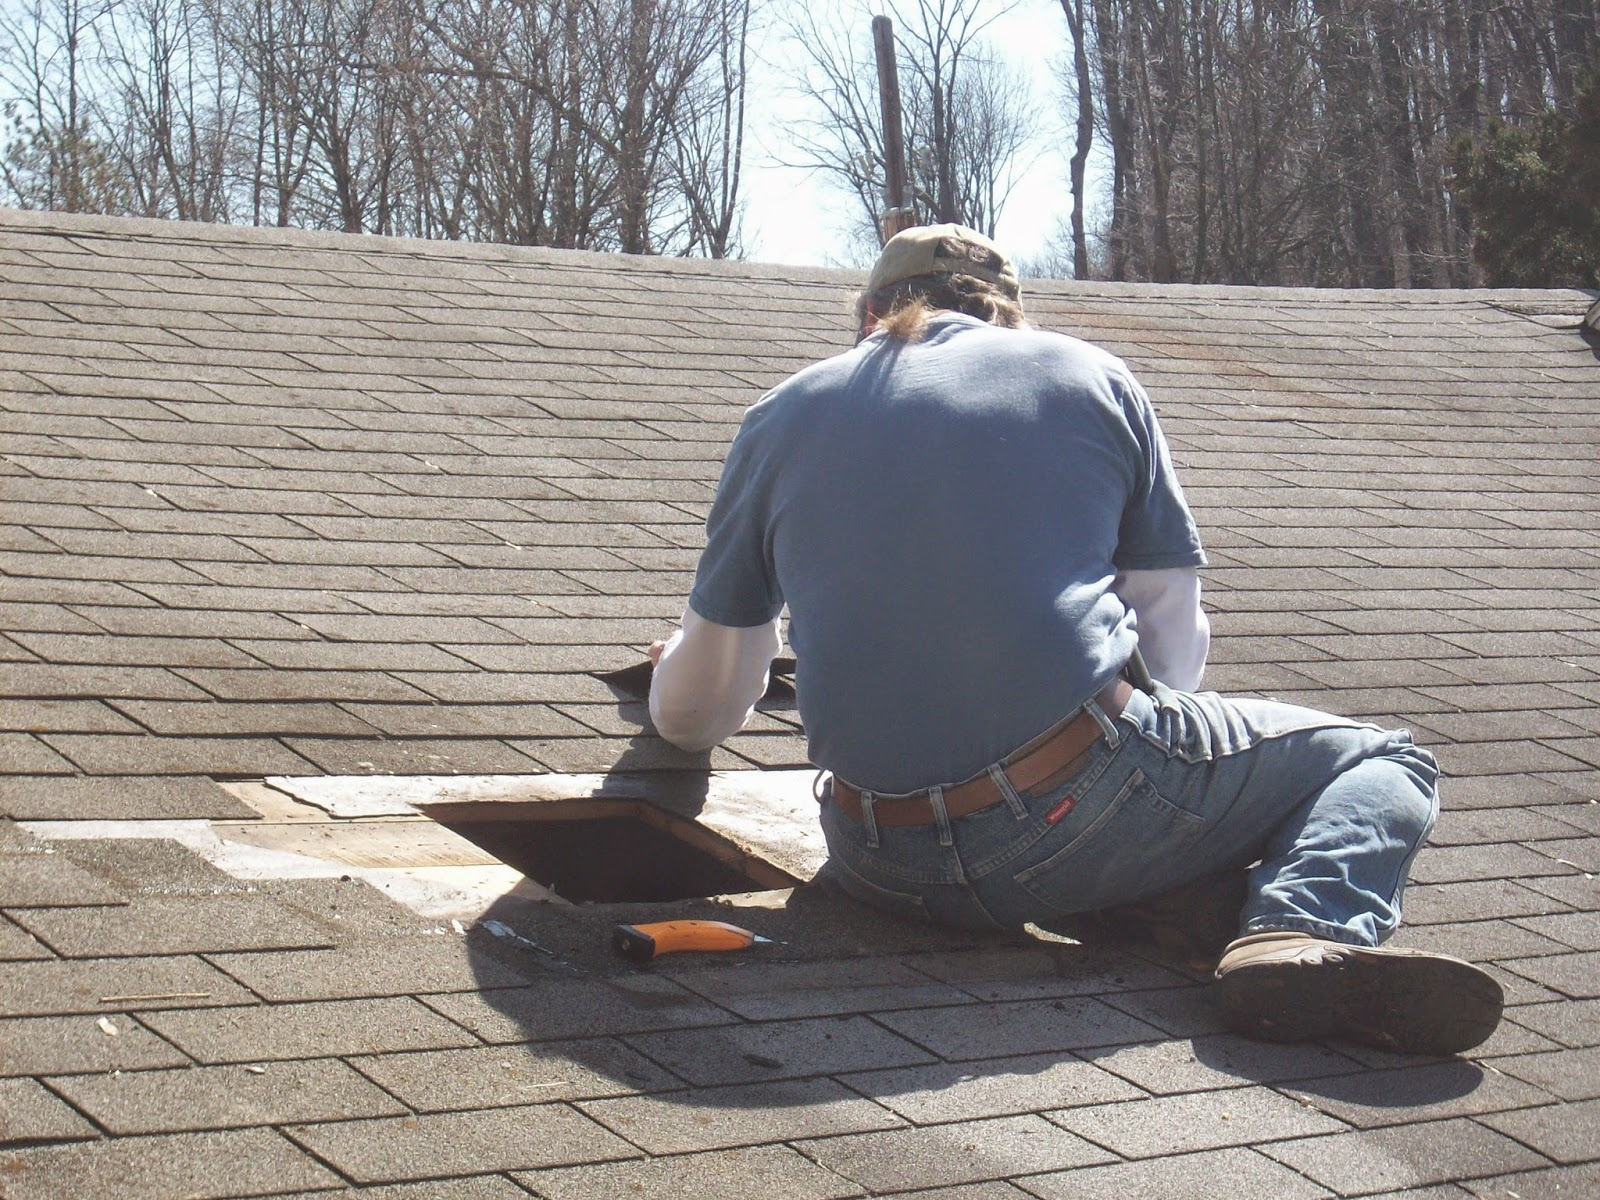 We Were Able To Find A Halfway Decent Match In A Cheap Shingle For The Patch.  After Patching The Hole With Plywood And Roofing Paper The Shingling Went  ...